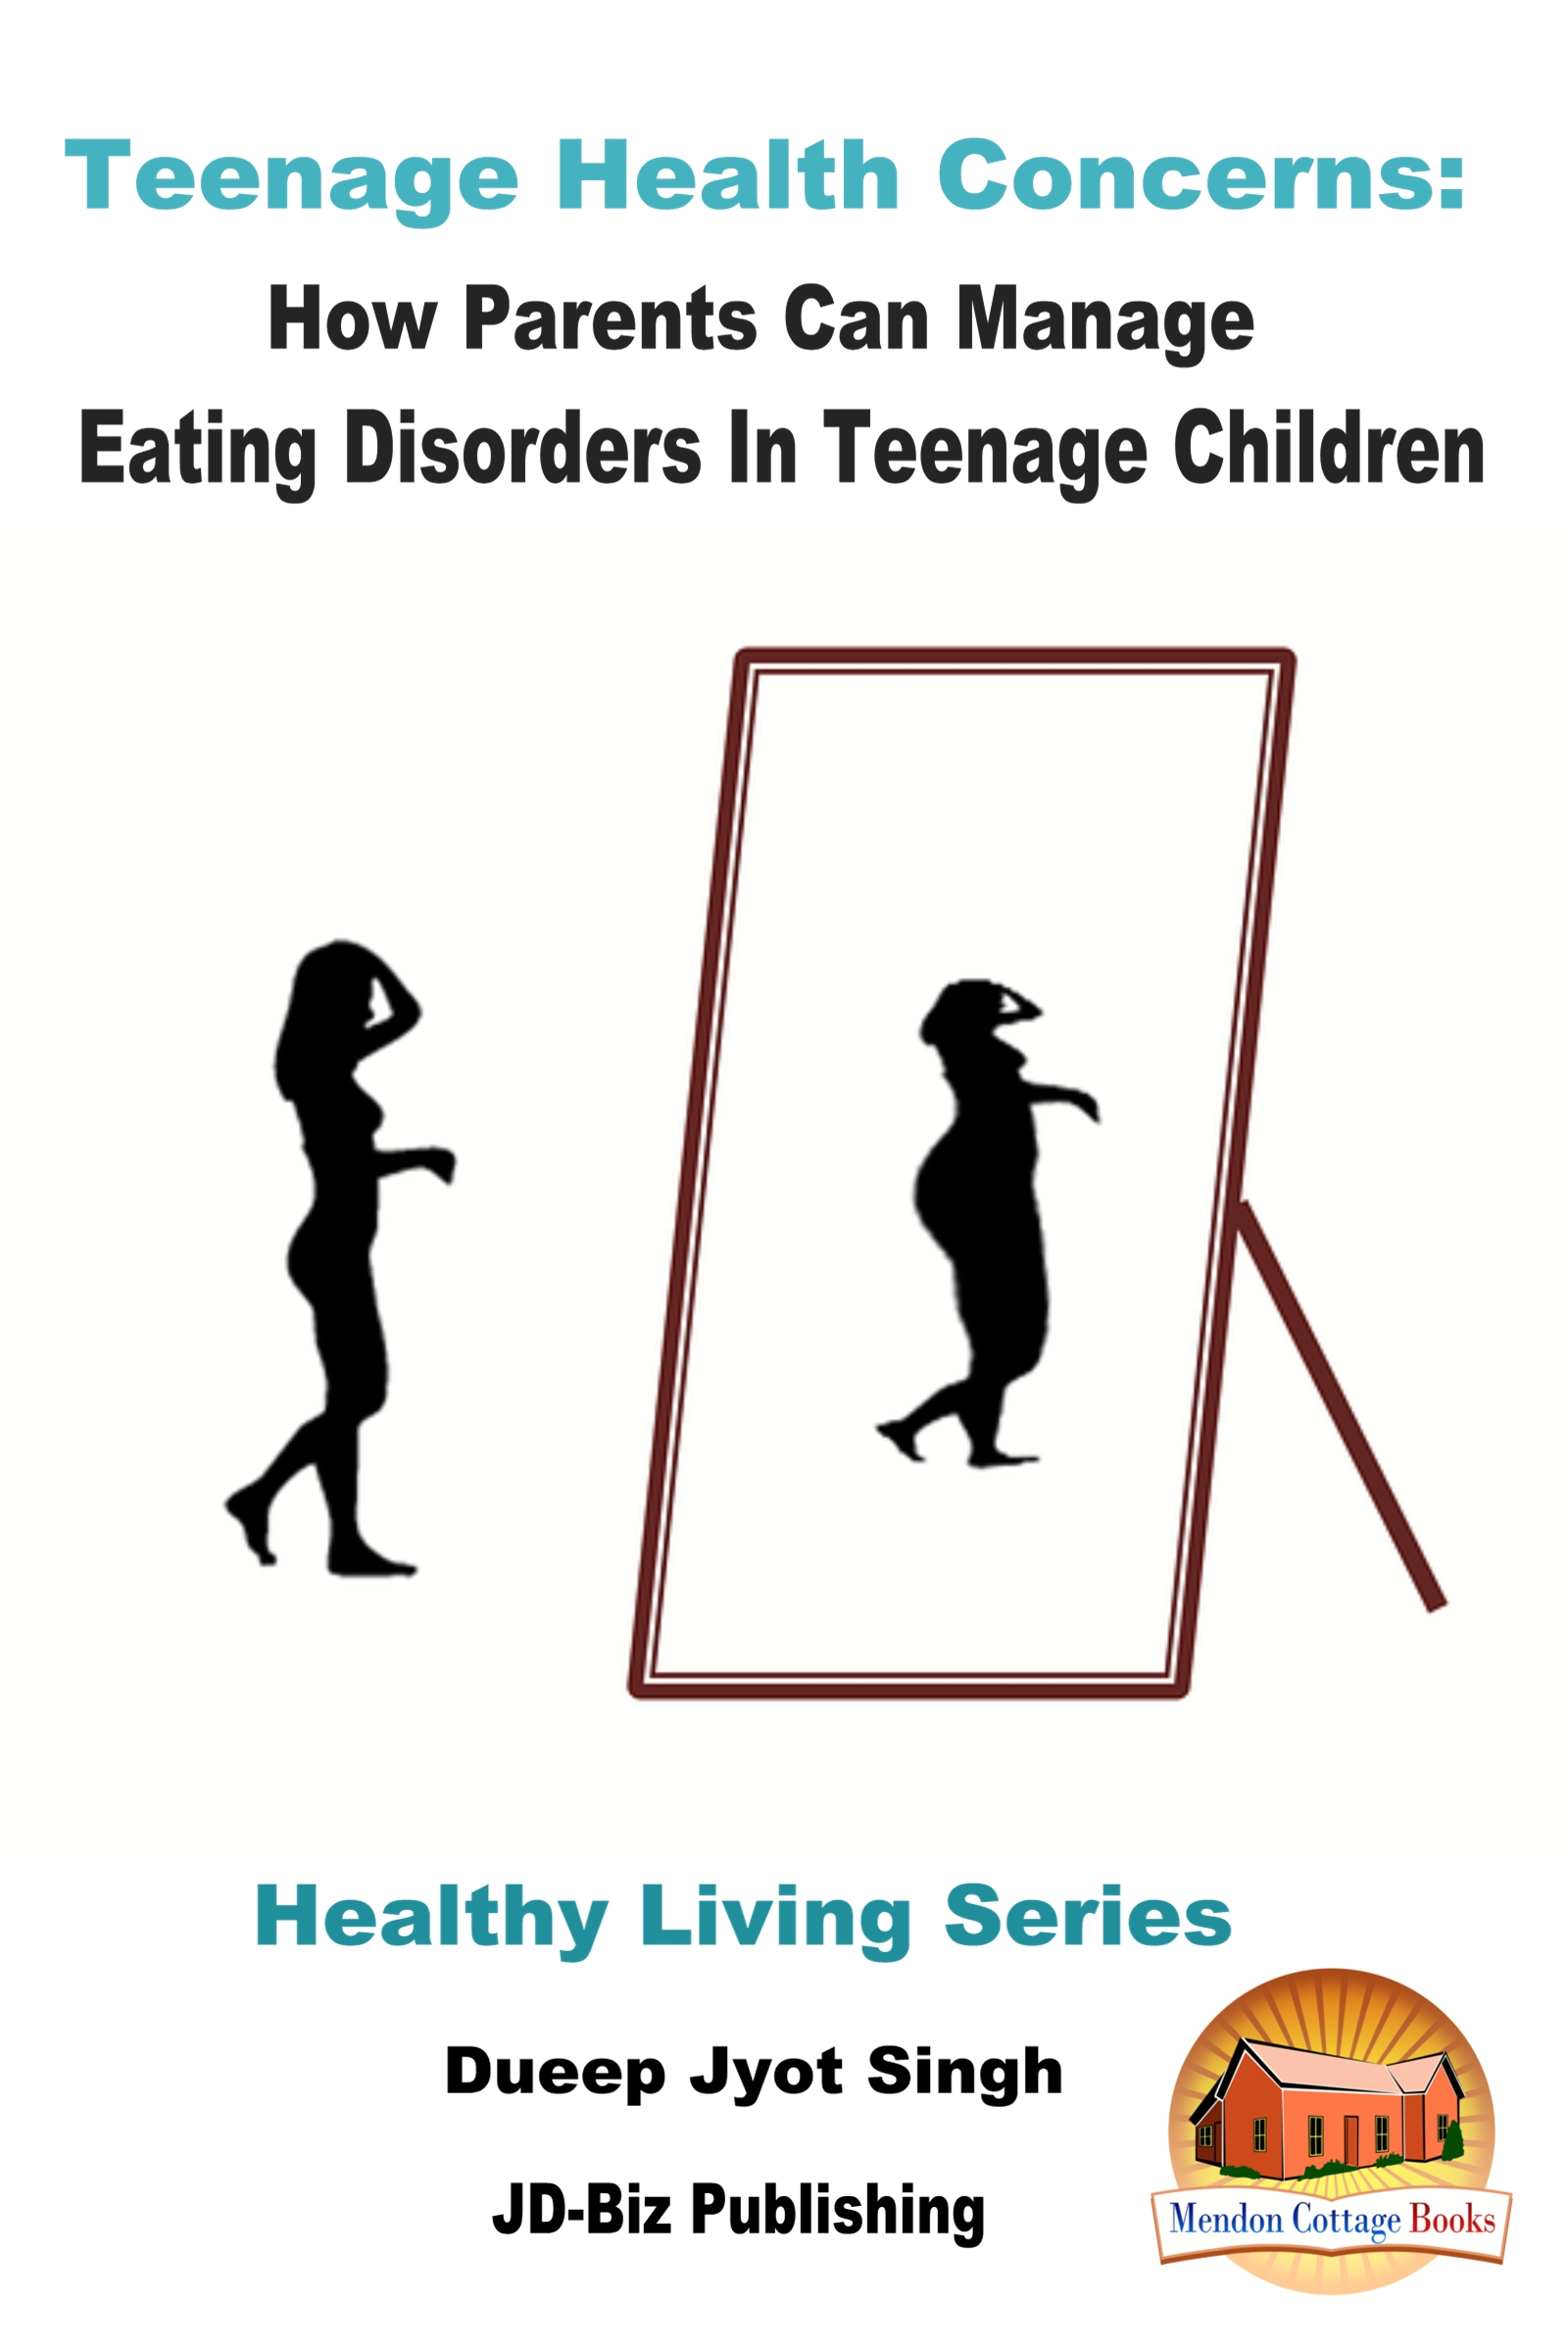 Teenage Health Concerns: How Parents Can Manage Eating Disorders In Teenage  Children, an Ebook by Dueep Jyot Singh